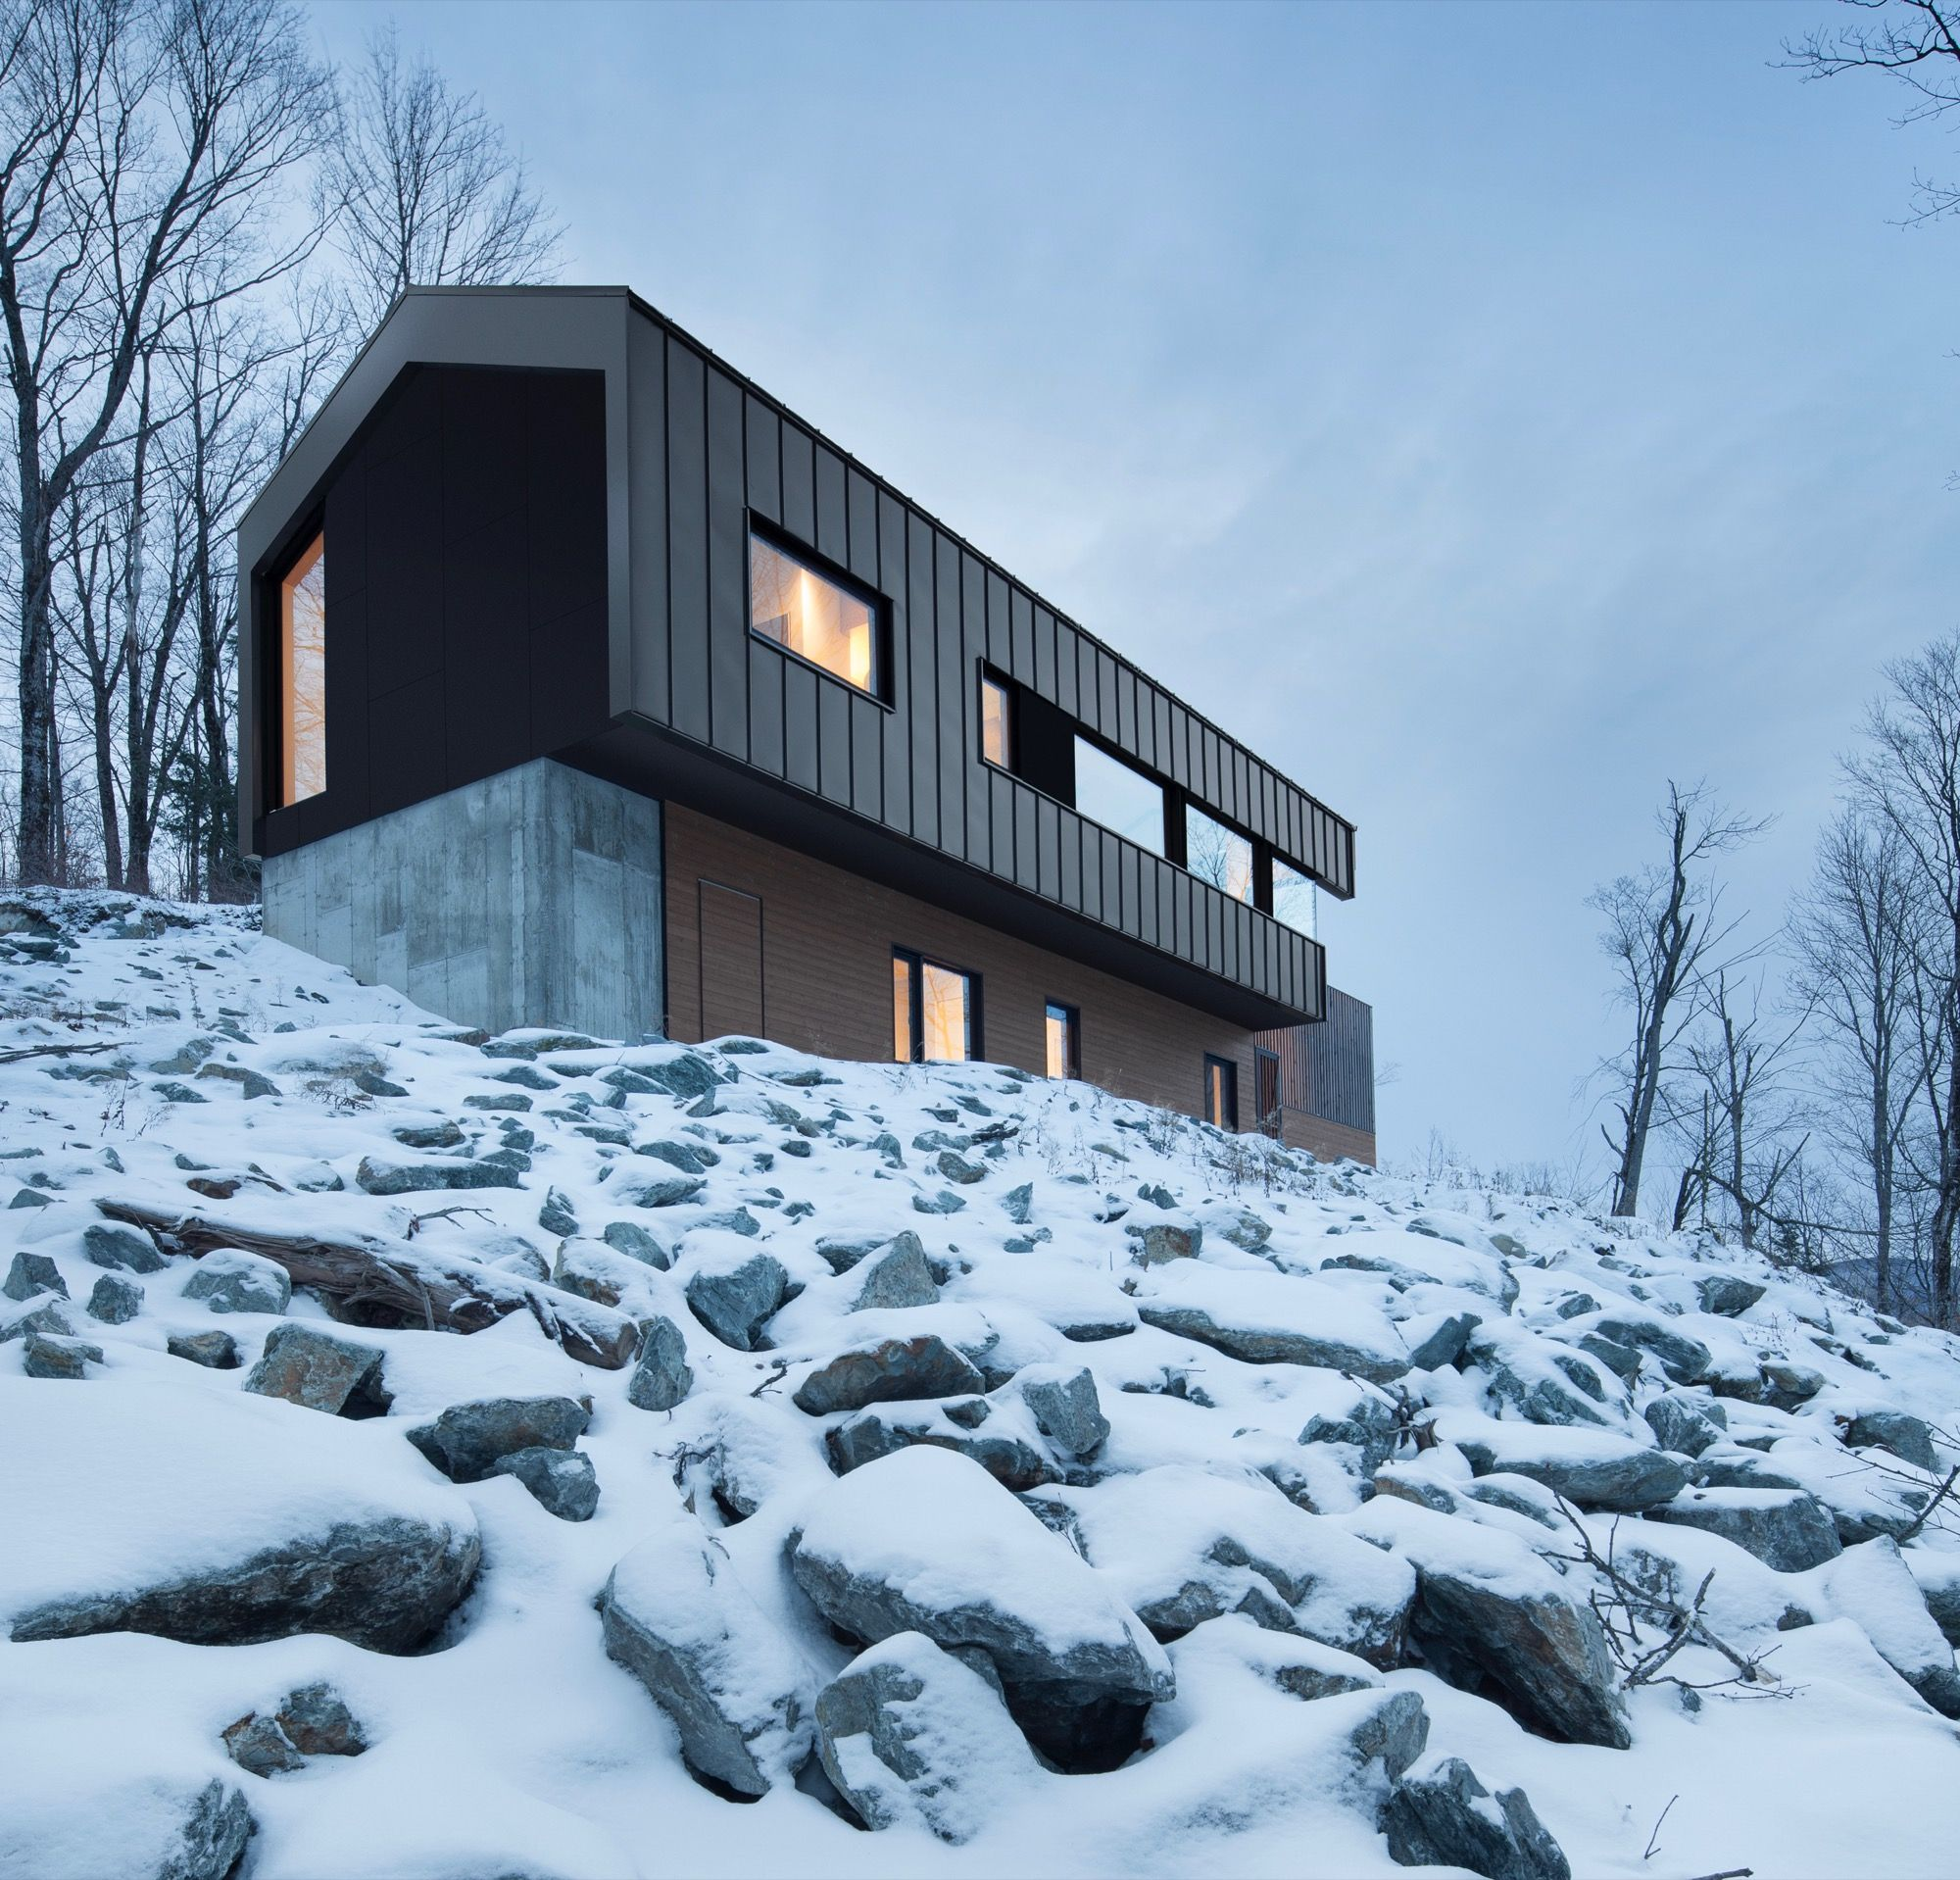 Built into the mountainside, a Quebec country house cantilevers over the treetops for magnificent views